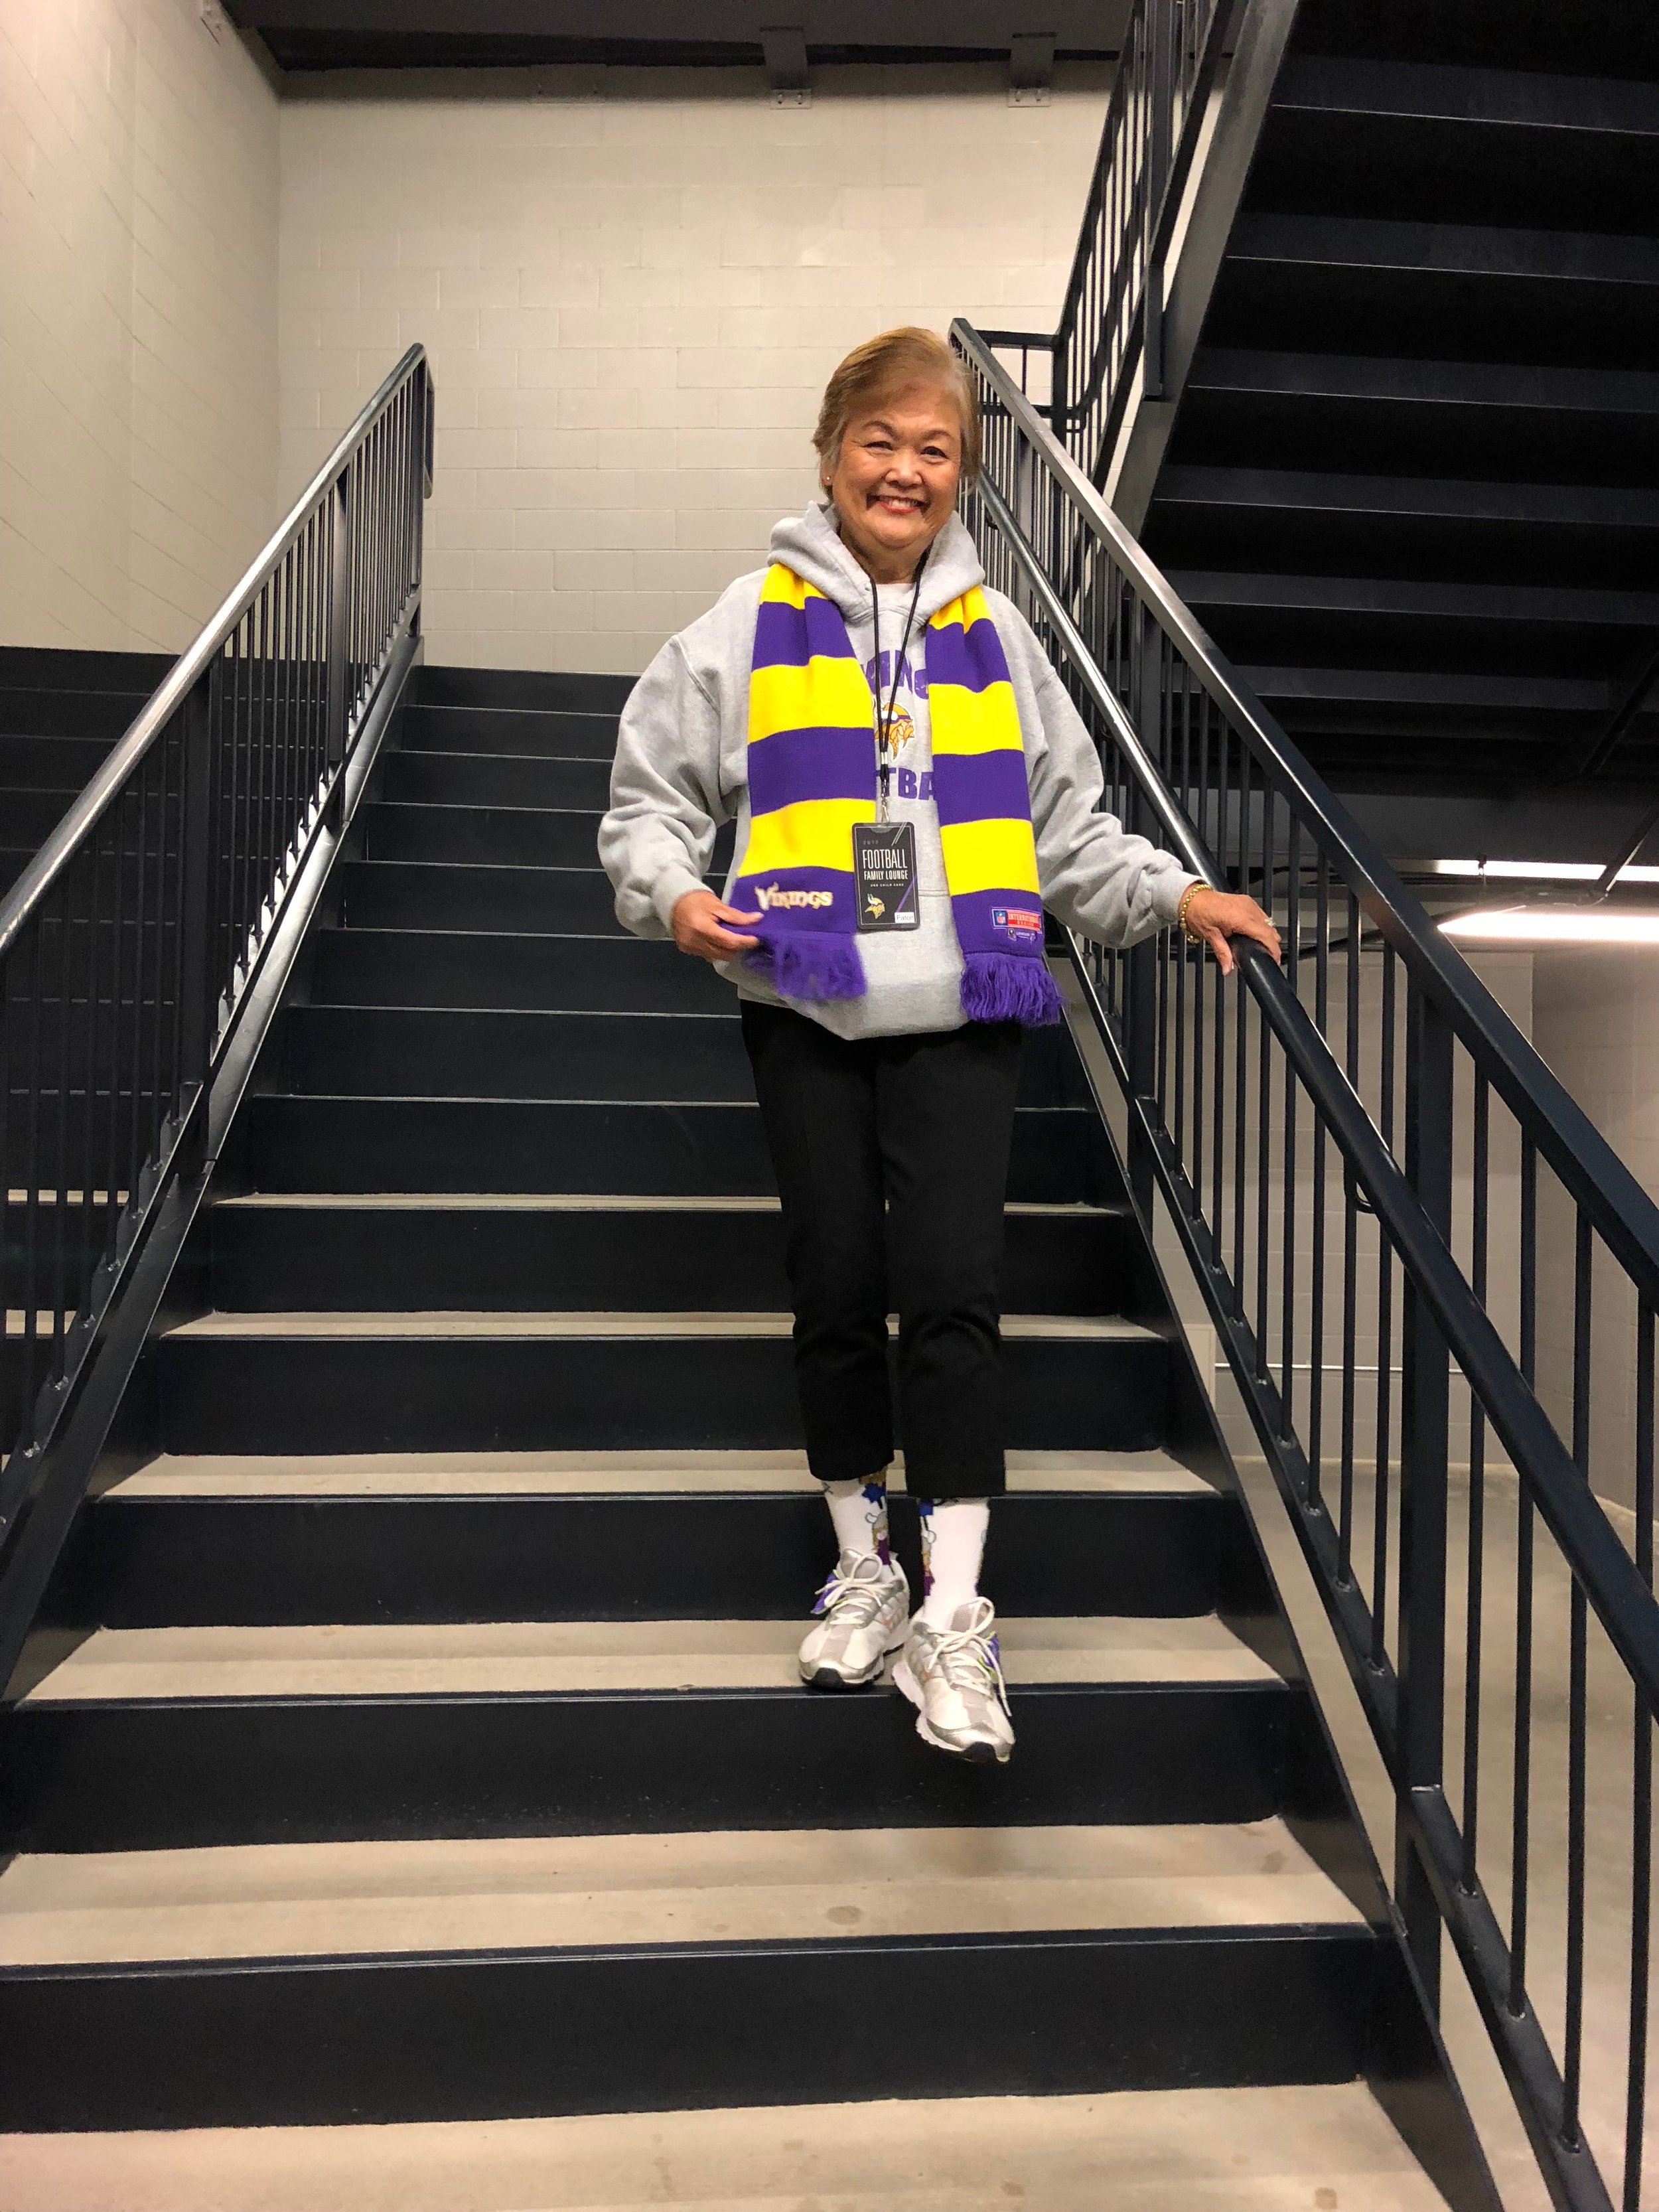 Mom will wear this outfit for the game on a Sunday and wear it until Wednesday morning. She'll start a new outfit Wednesday morning after a nice long shower.